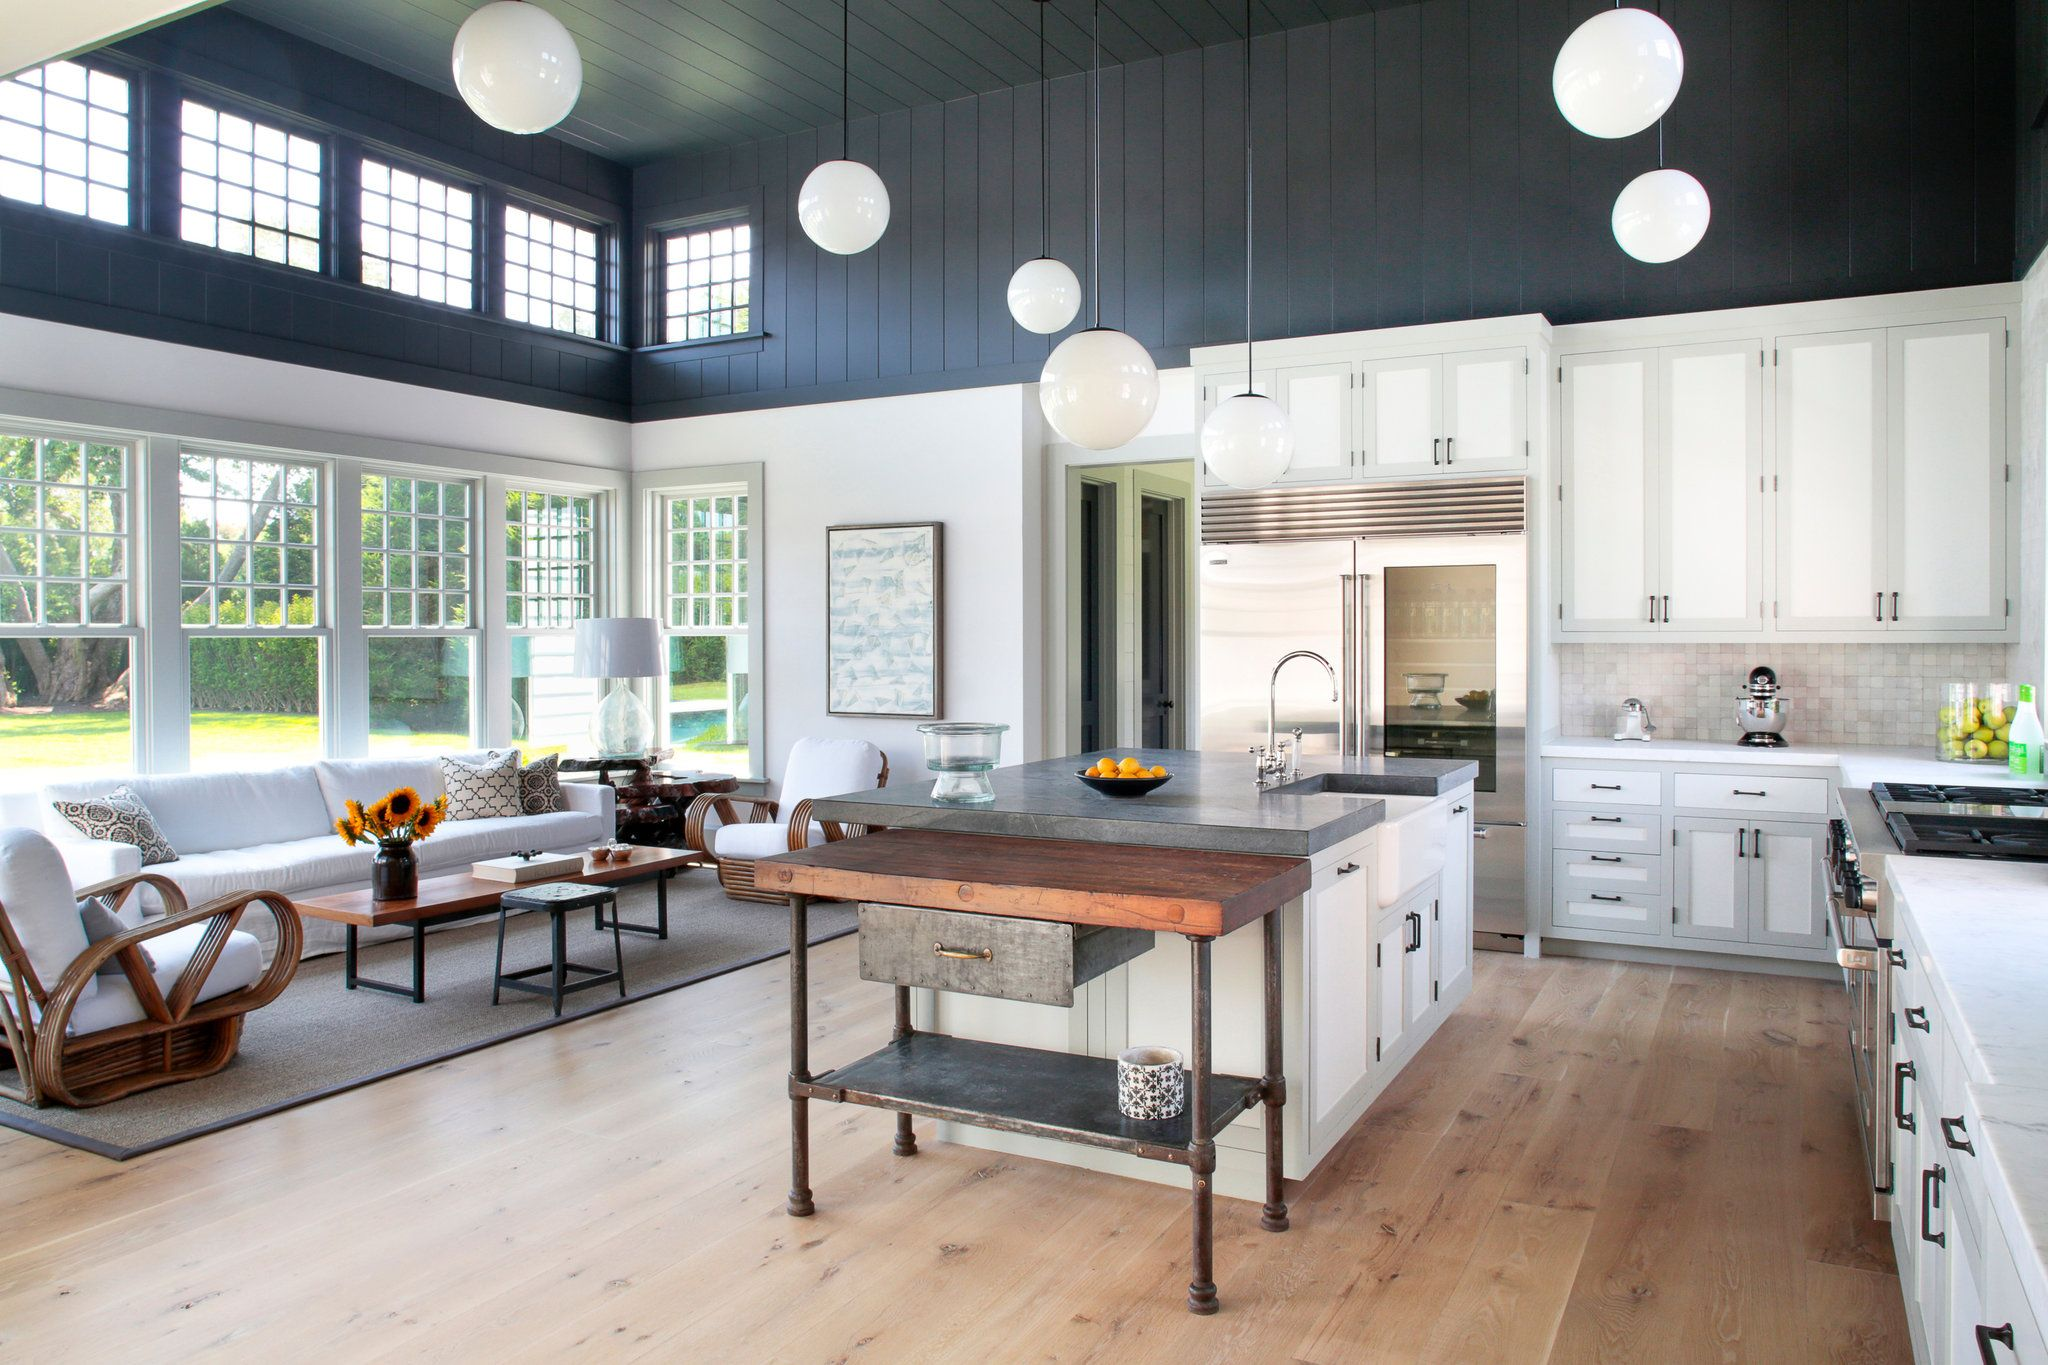 Razing the hamptons house building kitchens and loft ideas